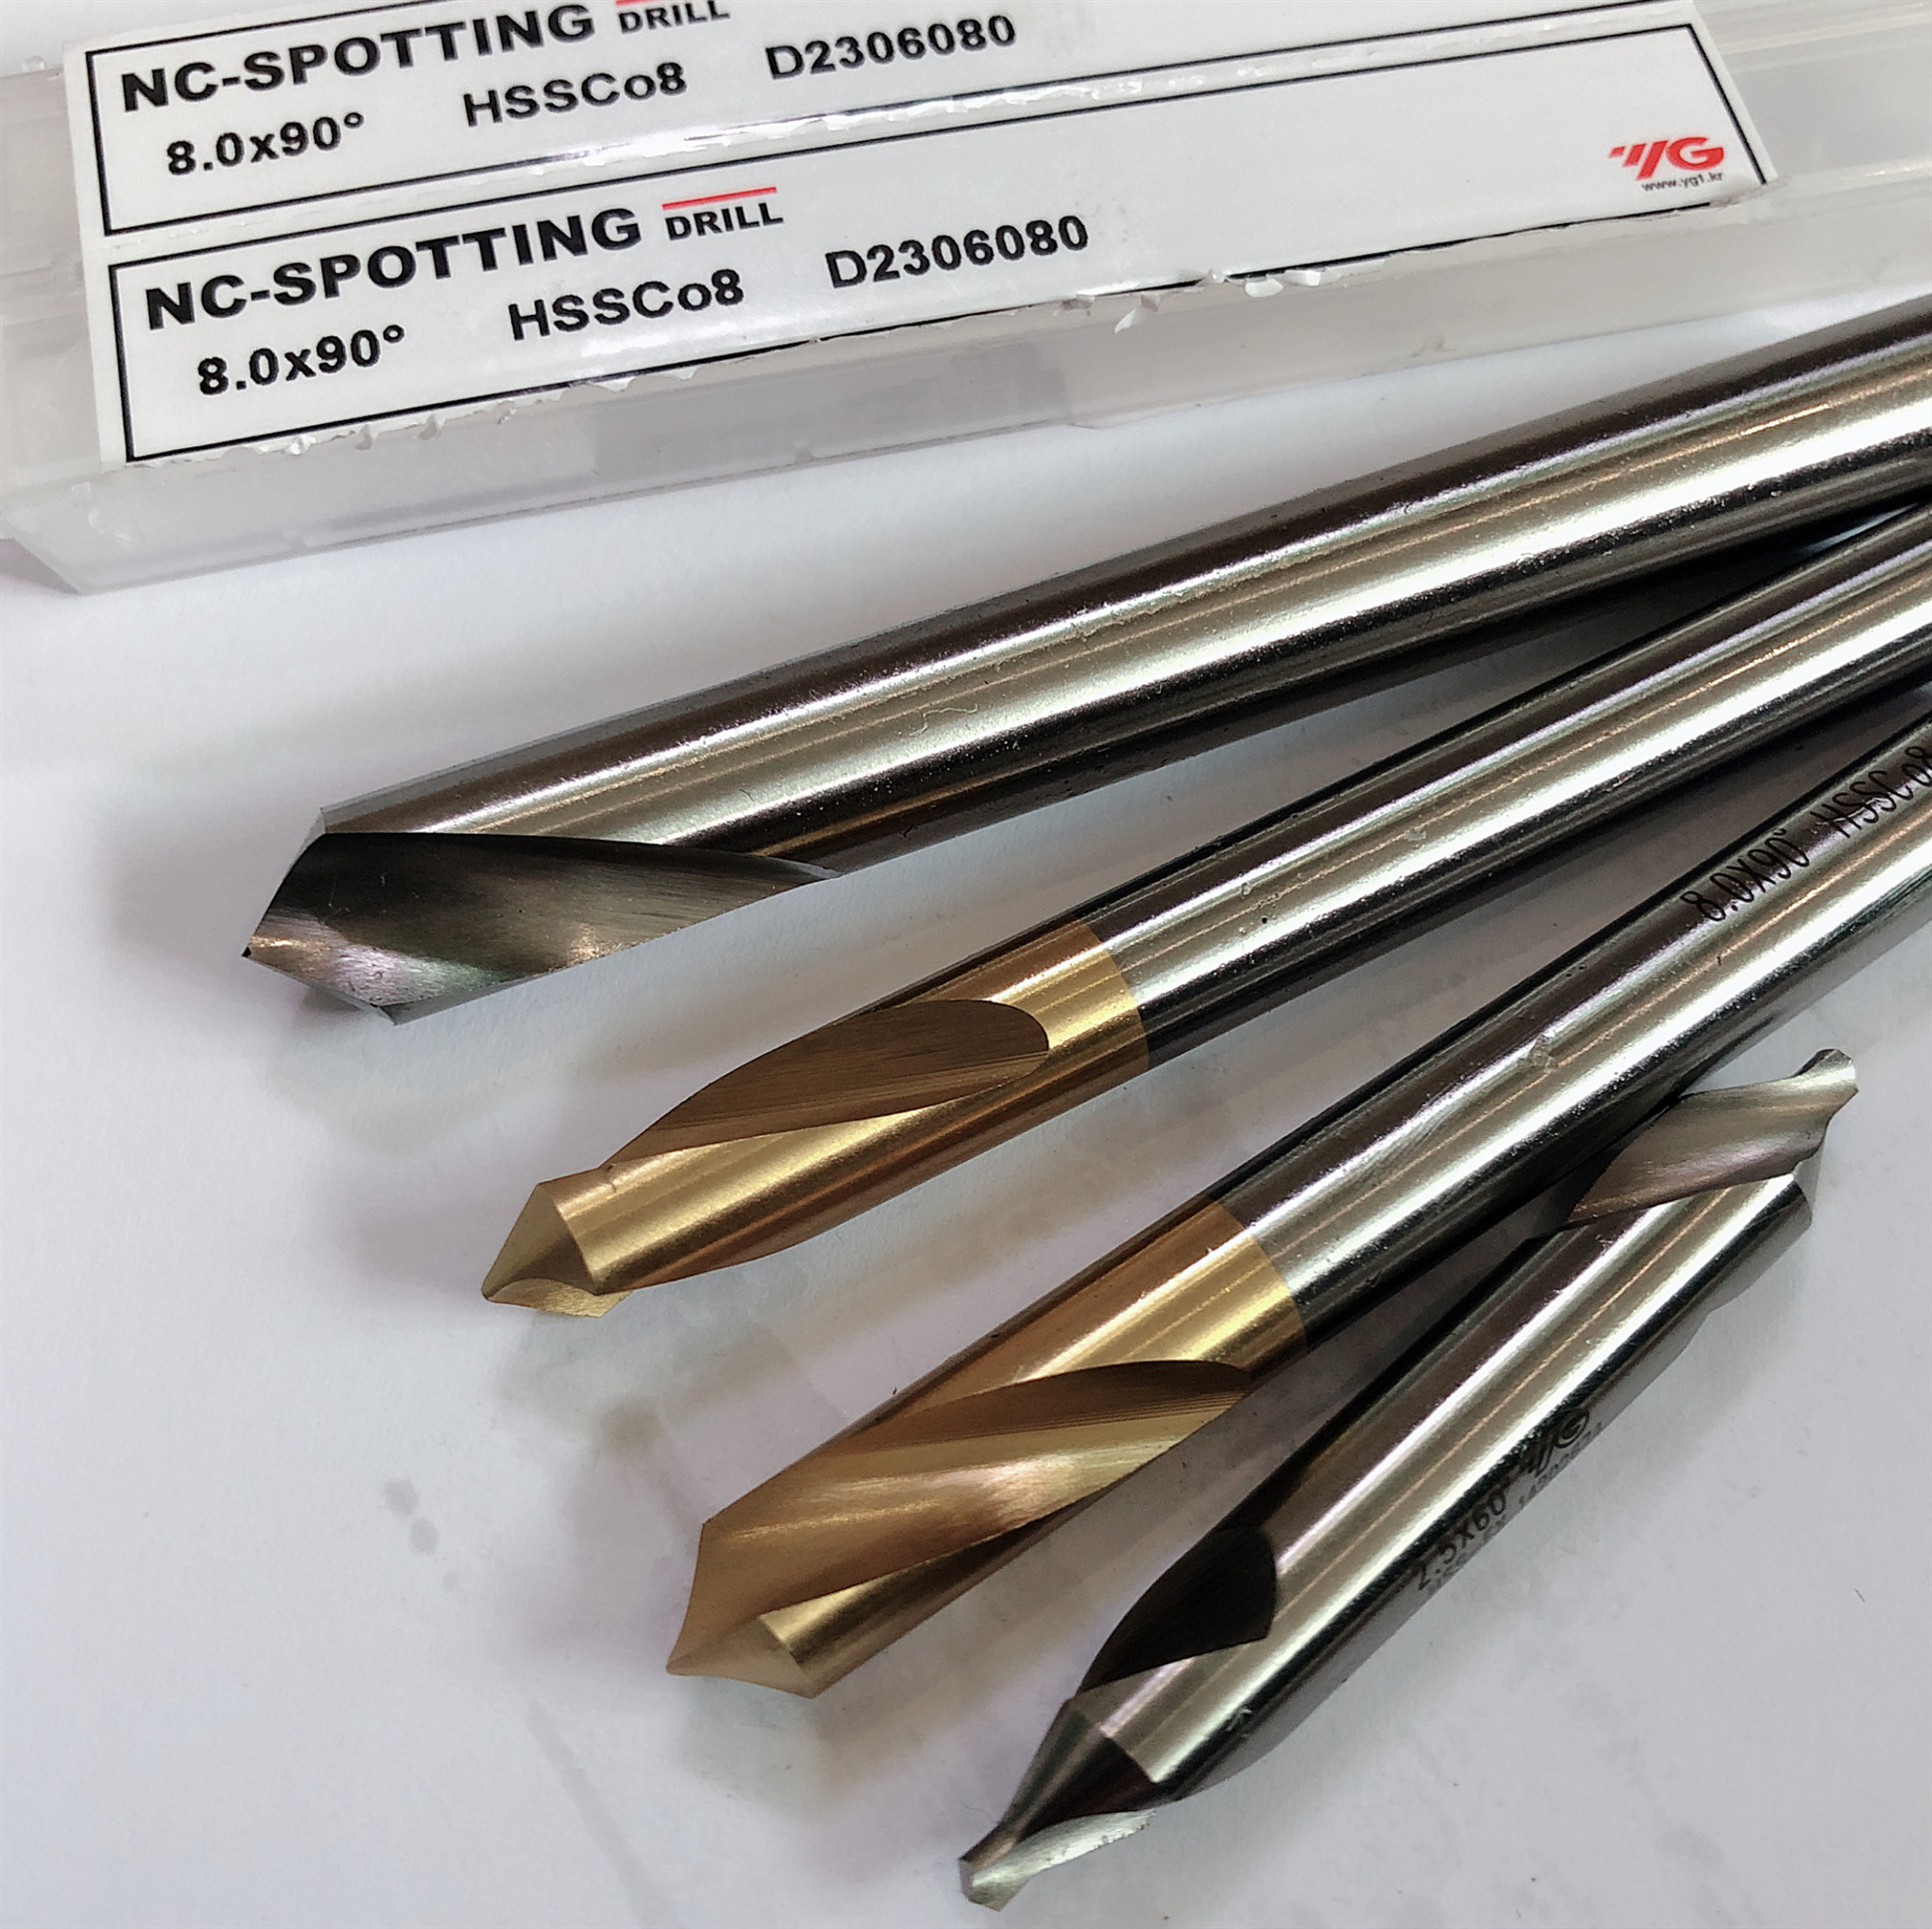 Korea YG-1 HSS-EX Co8 Center Drill 60 Degree  Combined 1-1.5-2-2.5-3-4-5mm  E Countersinks Angle Bit Set High Quality